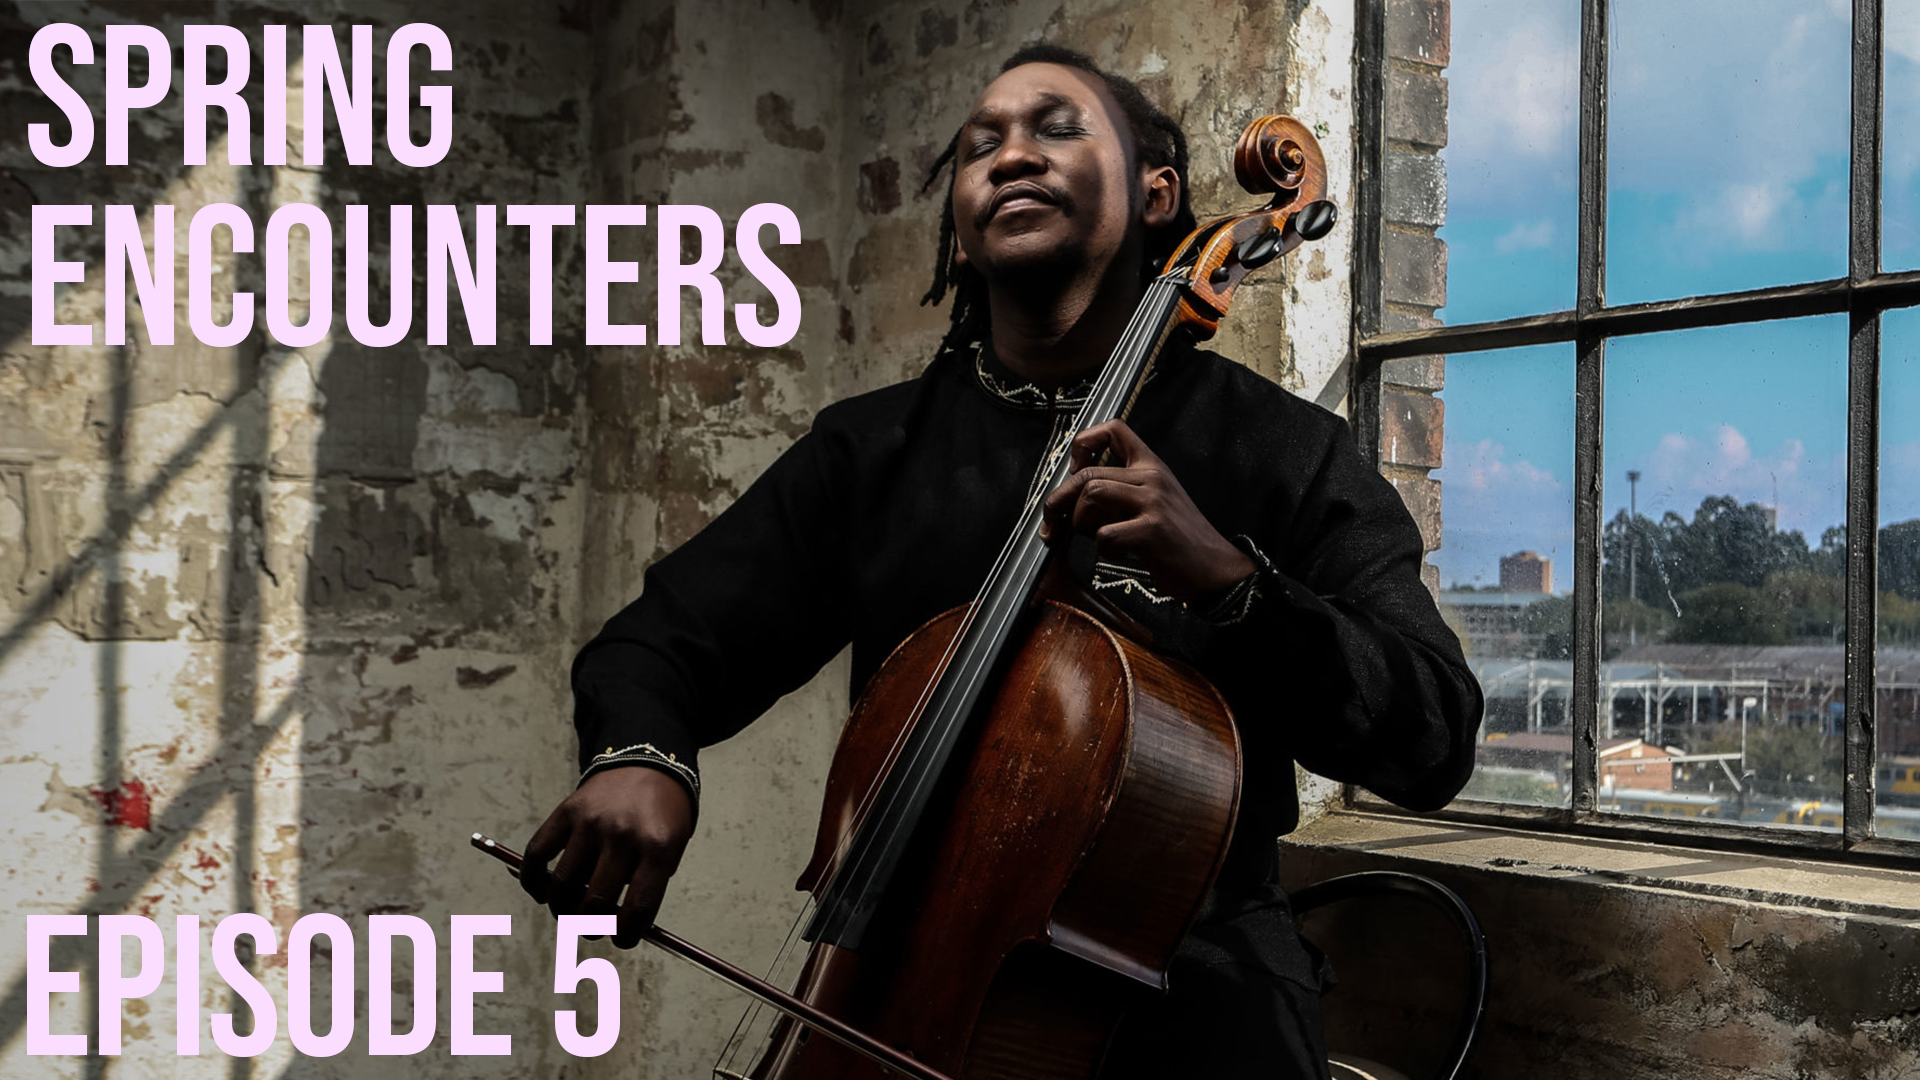 Photo for Spring Encounters: Episode 5 on ViewStub